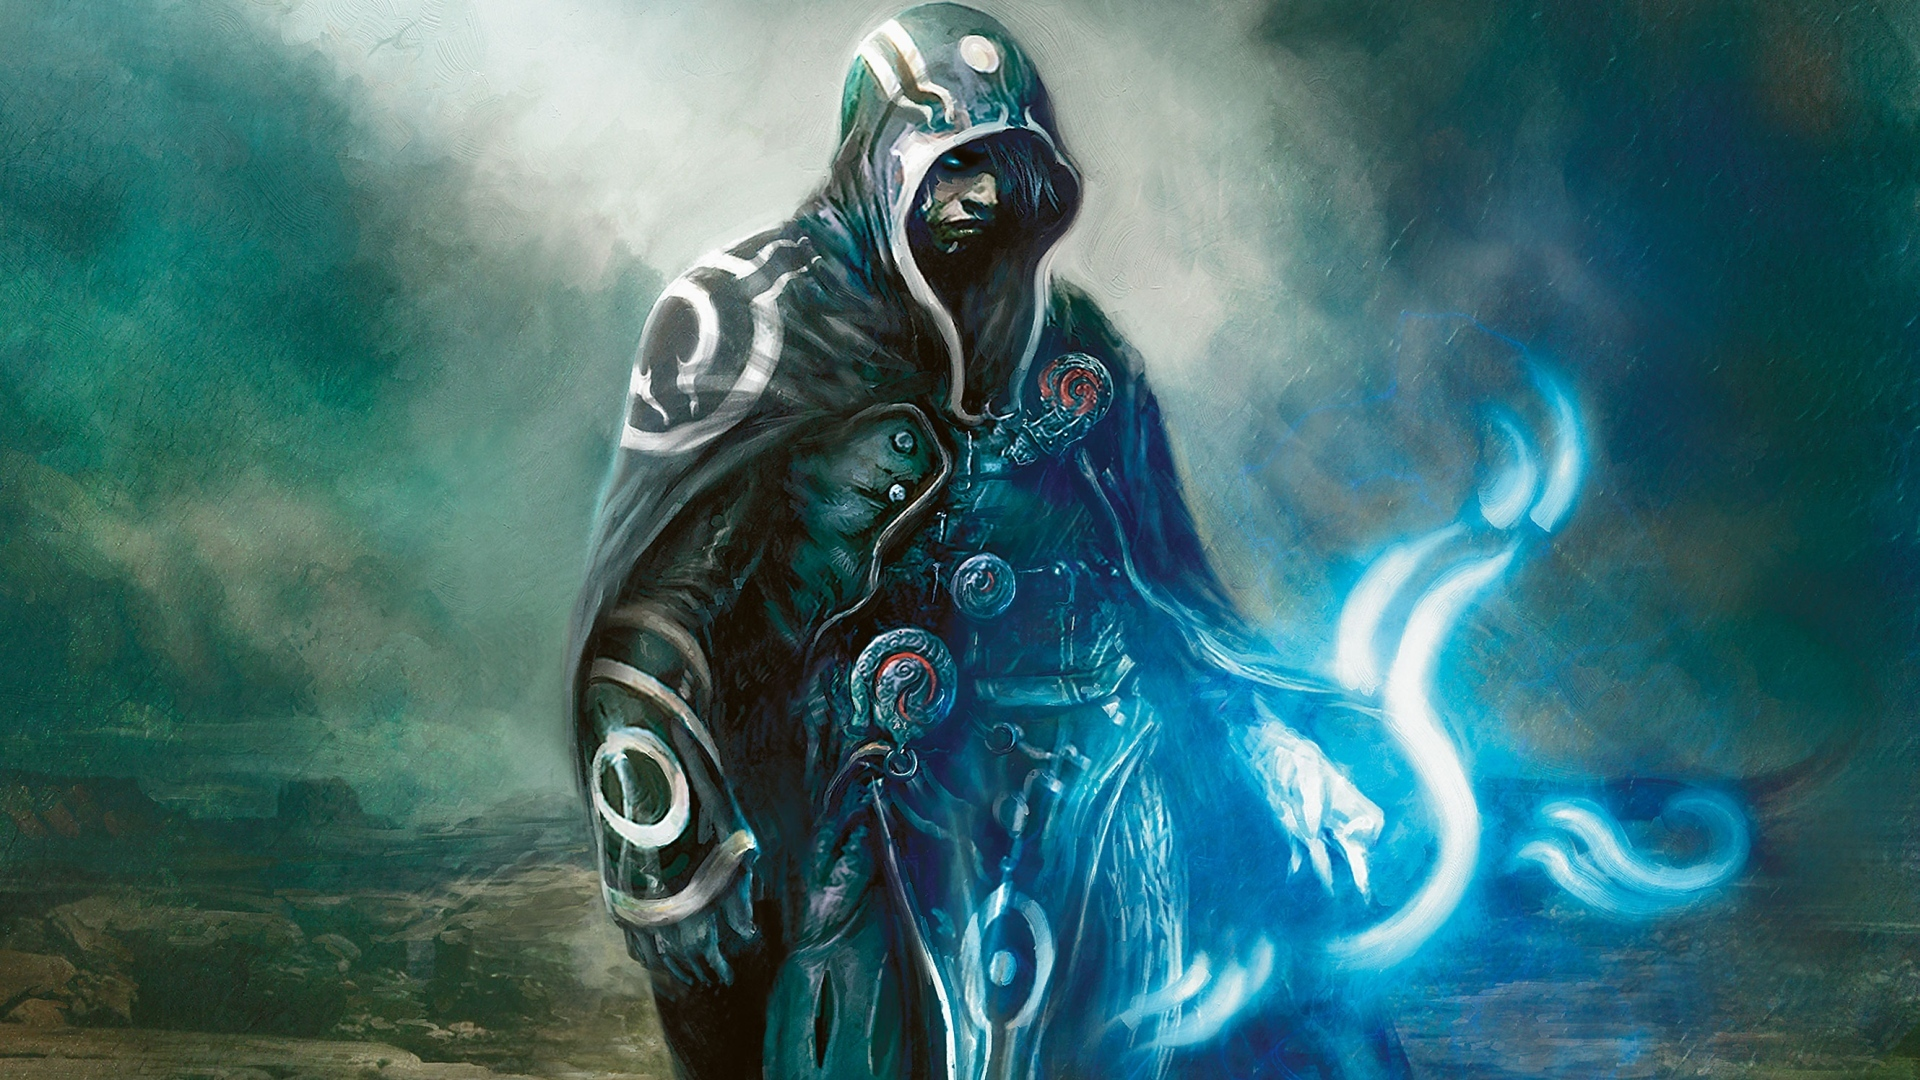 fantasy art artwork jace beleren mtg desktop 1920x1080 wallpaper